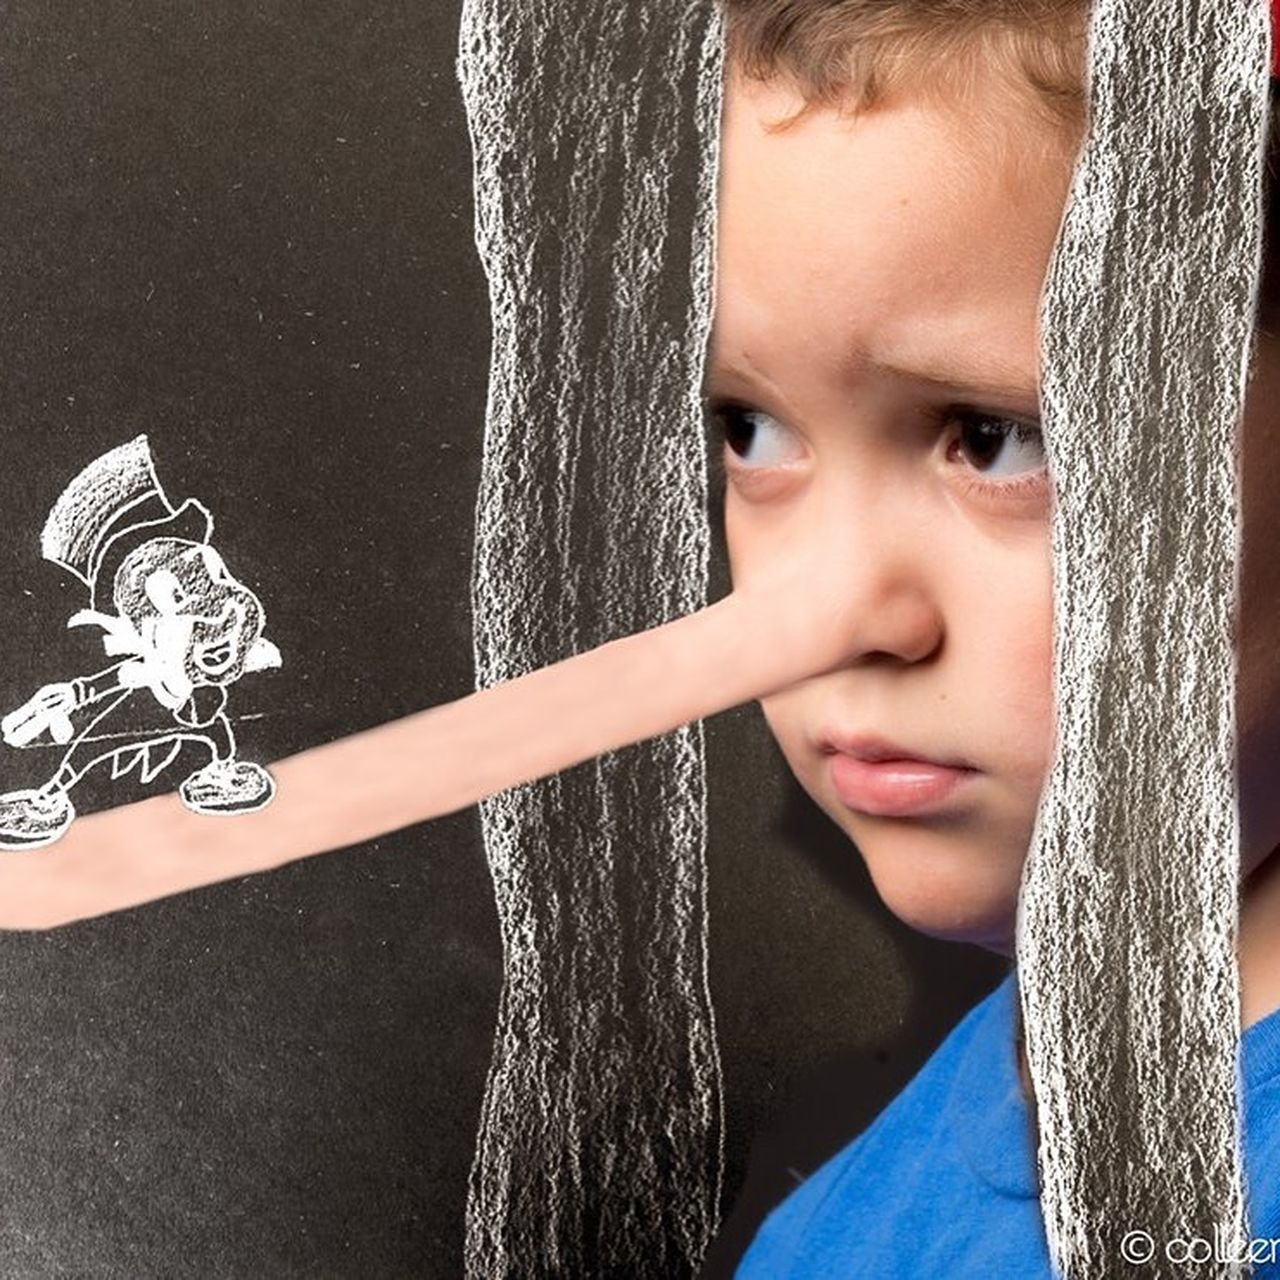 Pinocchio Gepetto Liar Kids Taking Photos Make It Yourself Fairytale  Makebelieve Photography Getting Creative